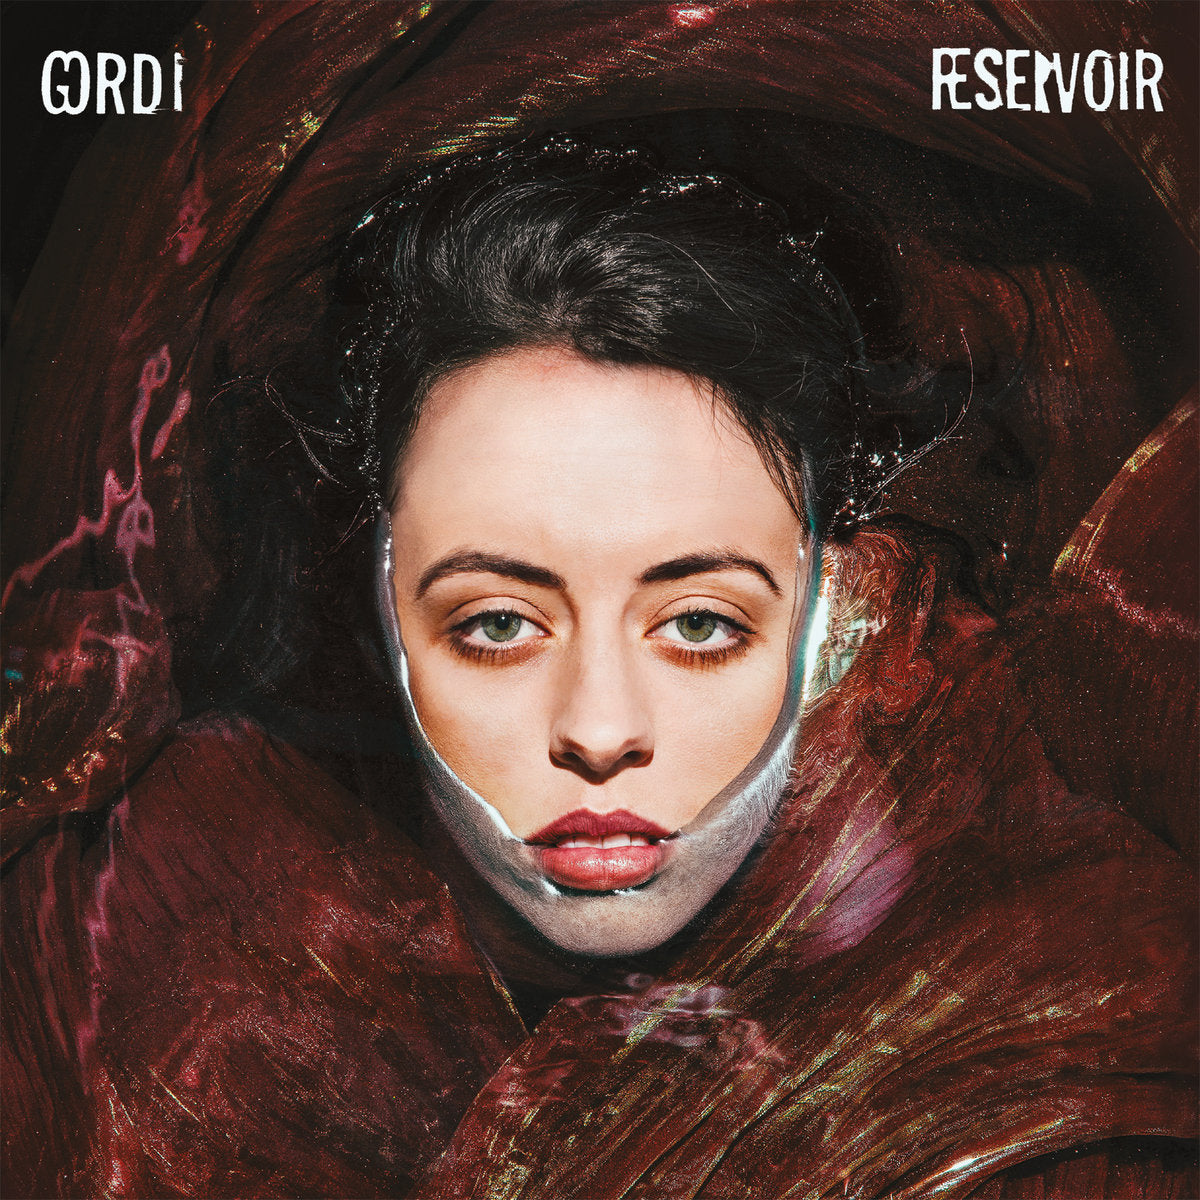 Gordi ‎– Reservoir (Limited Gold Vinyl)